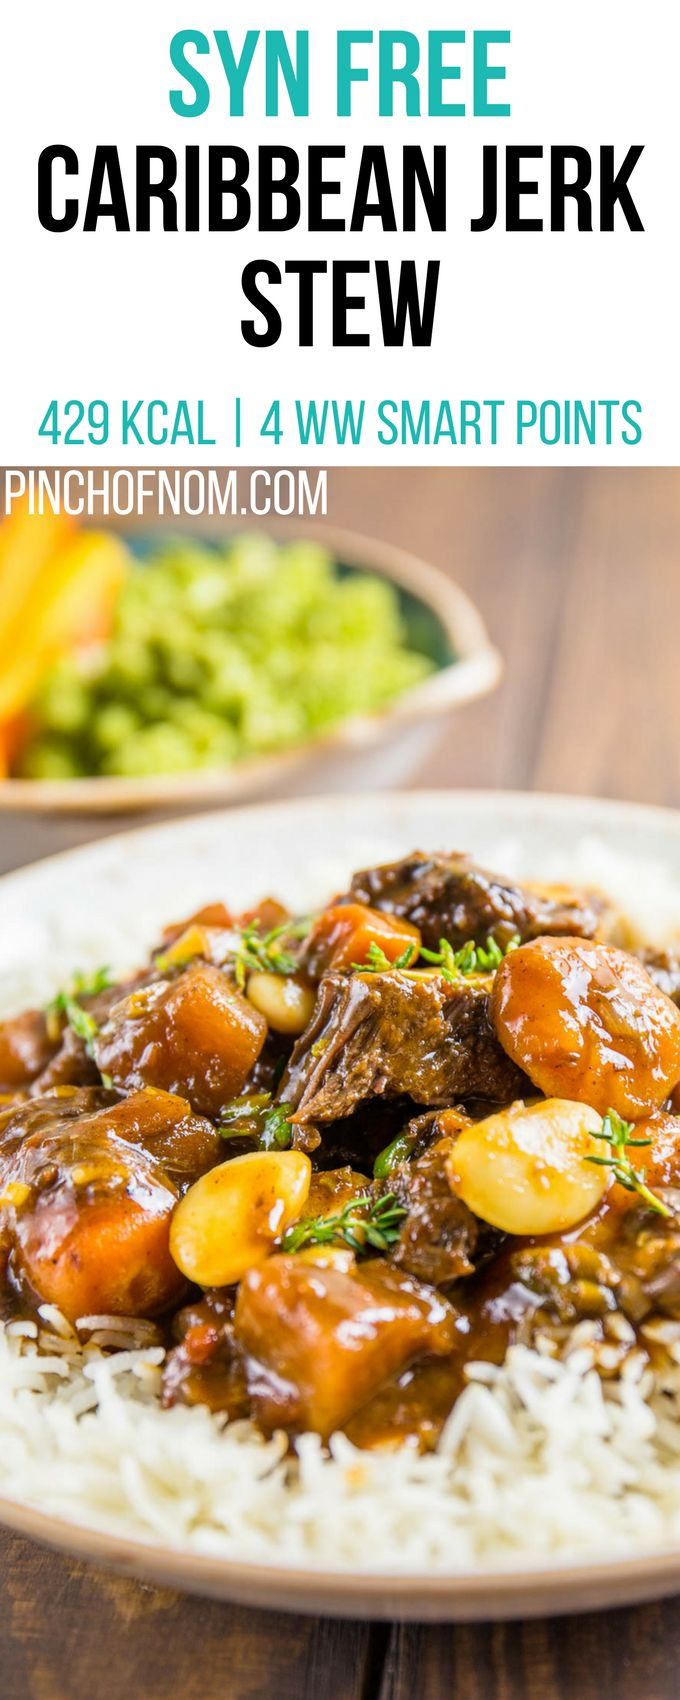 Syn Free Caribbean Jerk Stew | Pinch Of Nom Slimming World Recipes    429 kcal | Syn Free | 4 Weight Watchers Smart Points